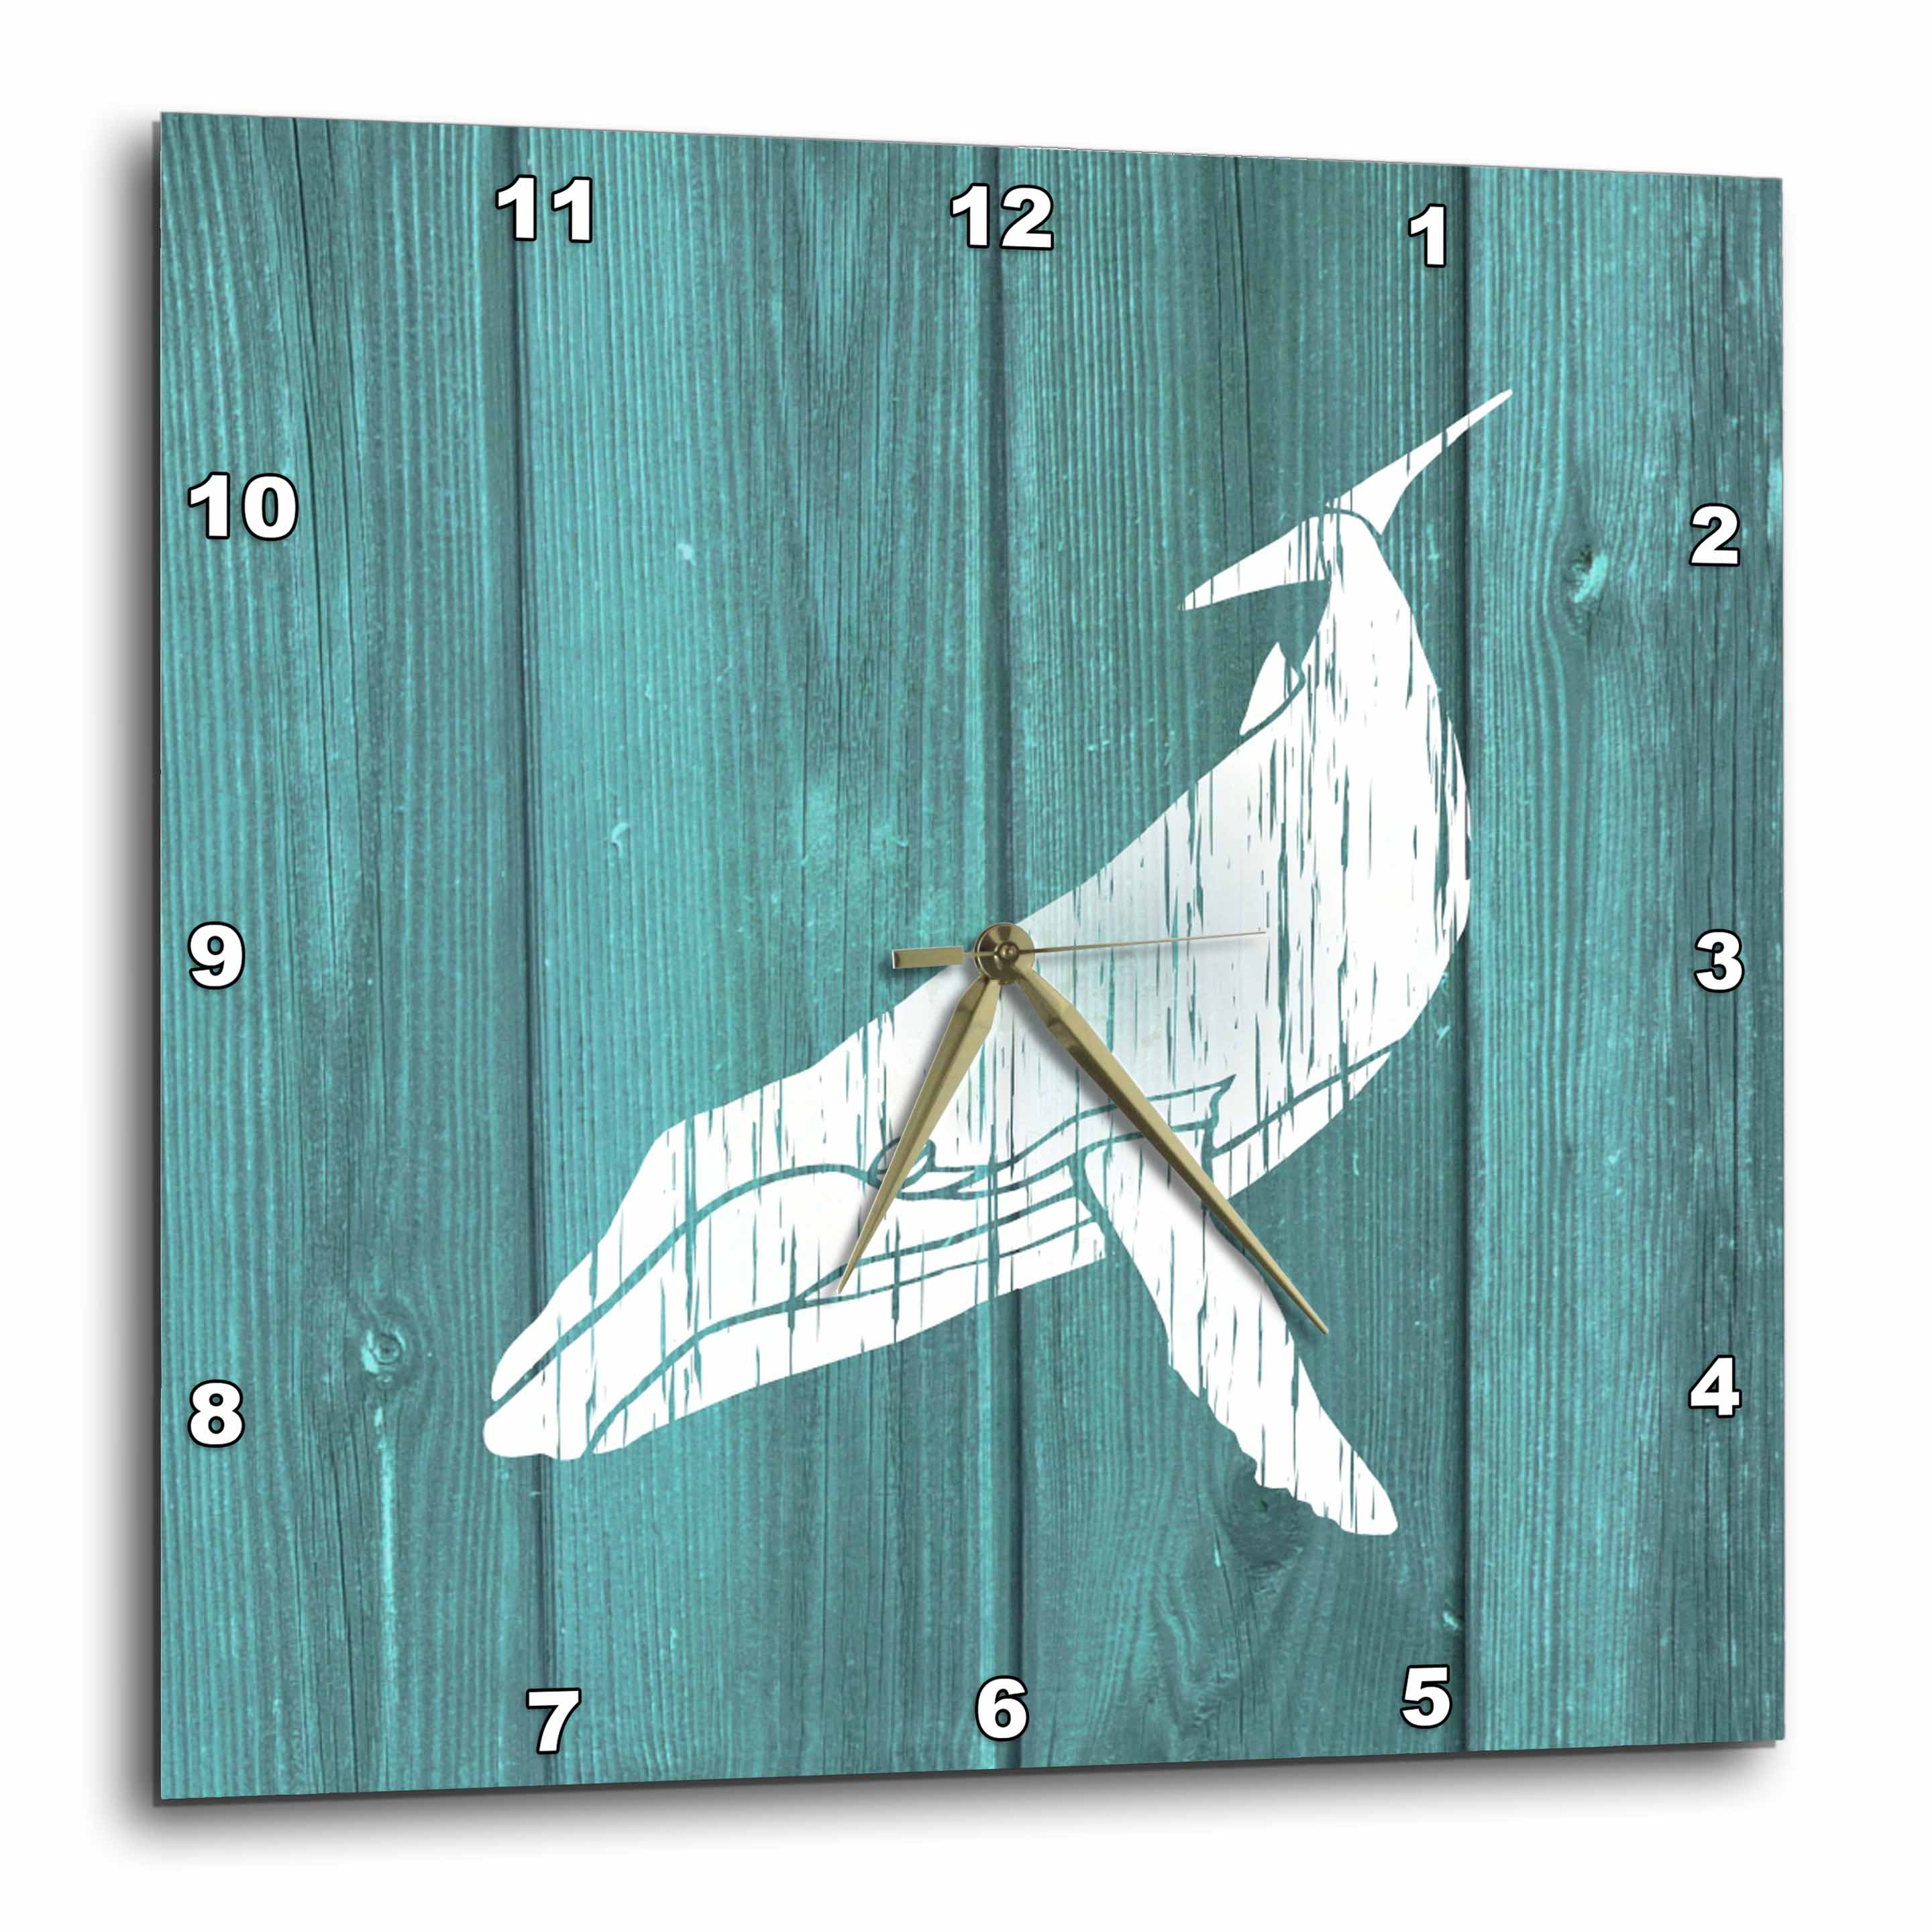 3dRose Humpback Whale Stencil in Faded White Paint over Teal- not real wood, Wall Clock, 10 by 10-inch by 3dRose